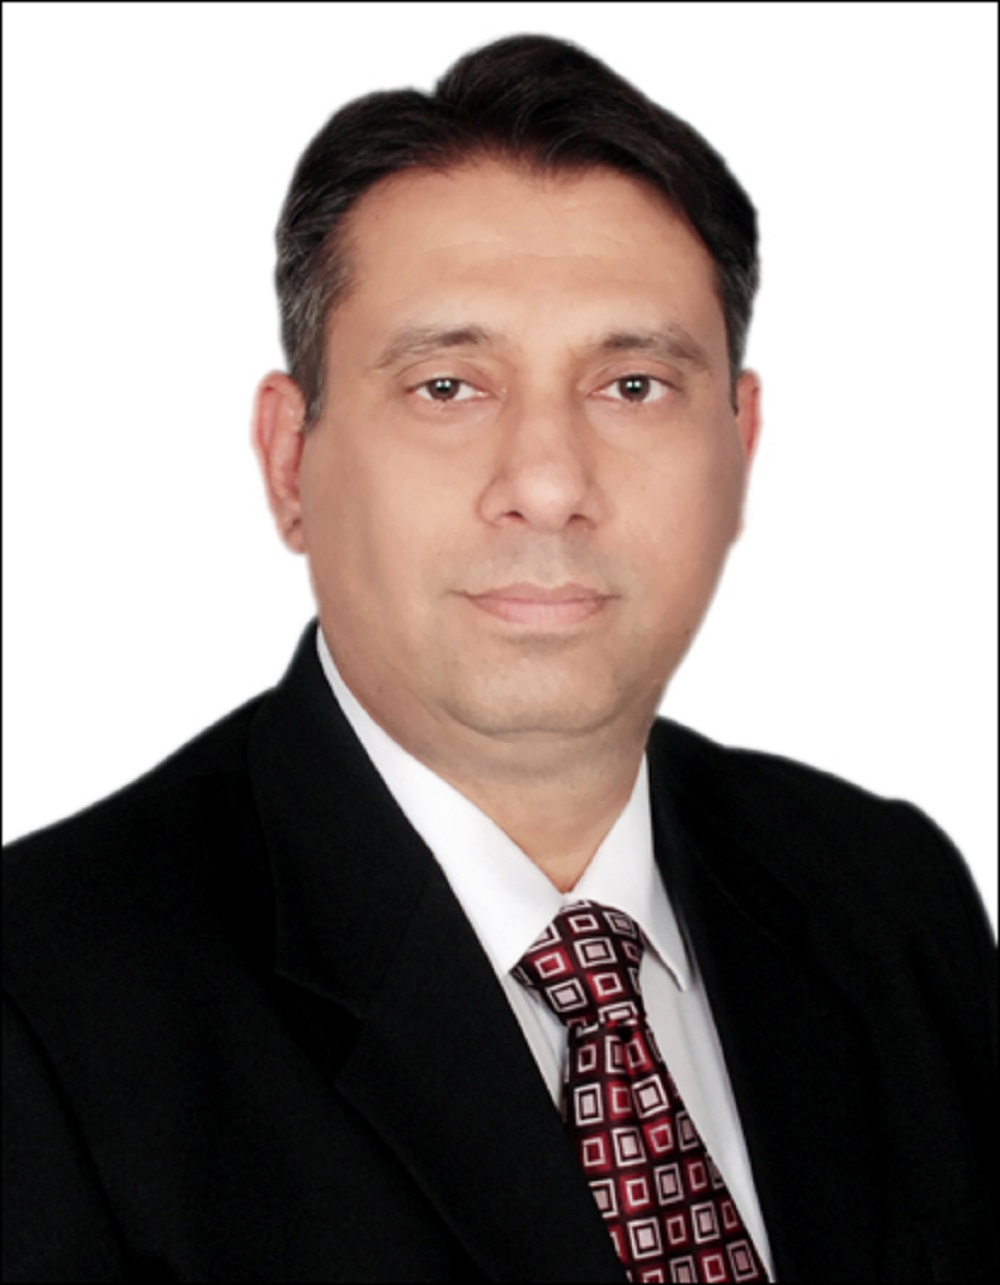 Mr. Kapil Wadhwa, Director, Champion Computers